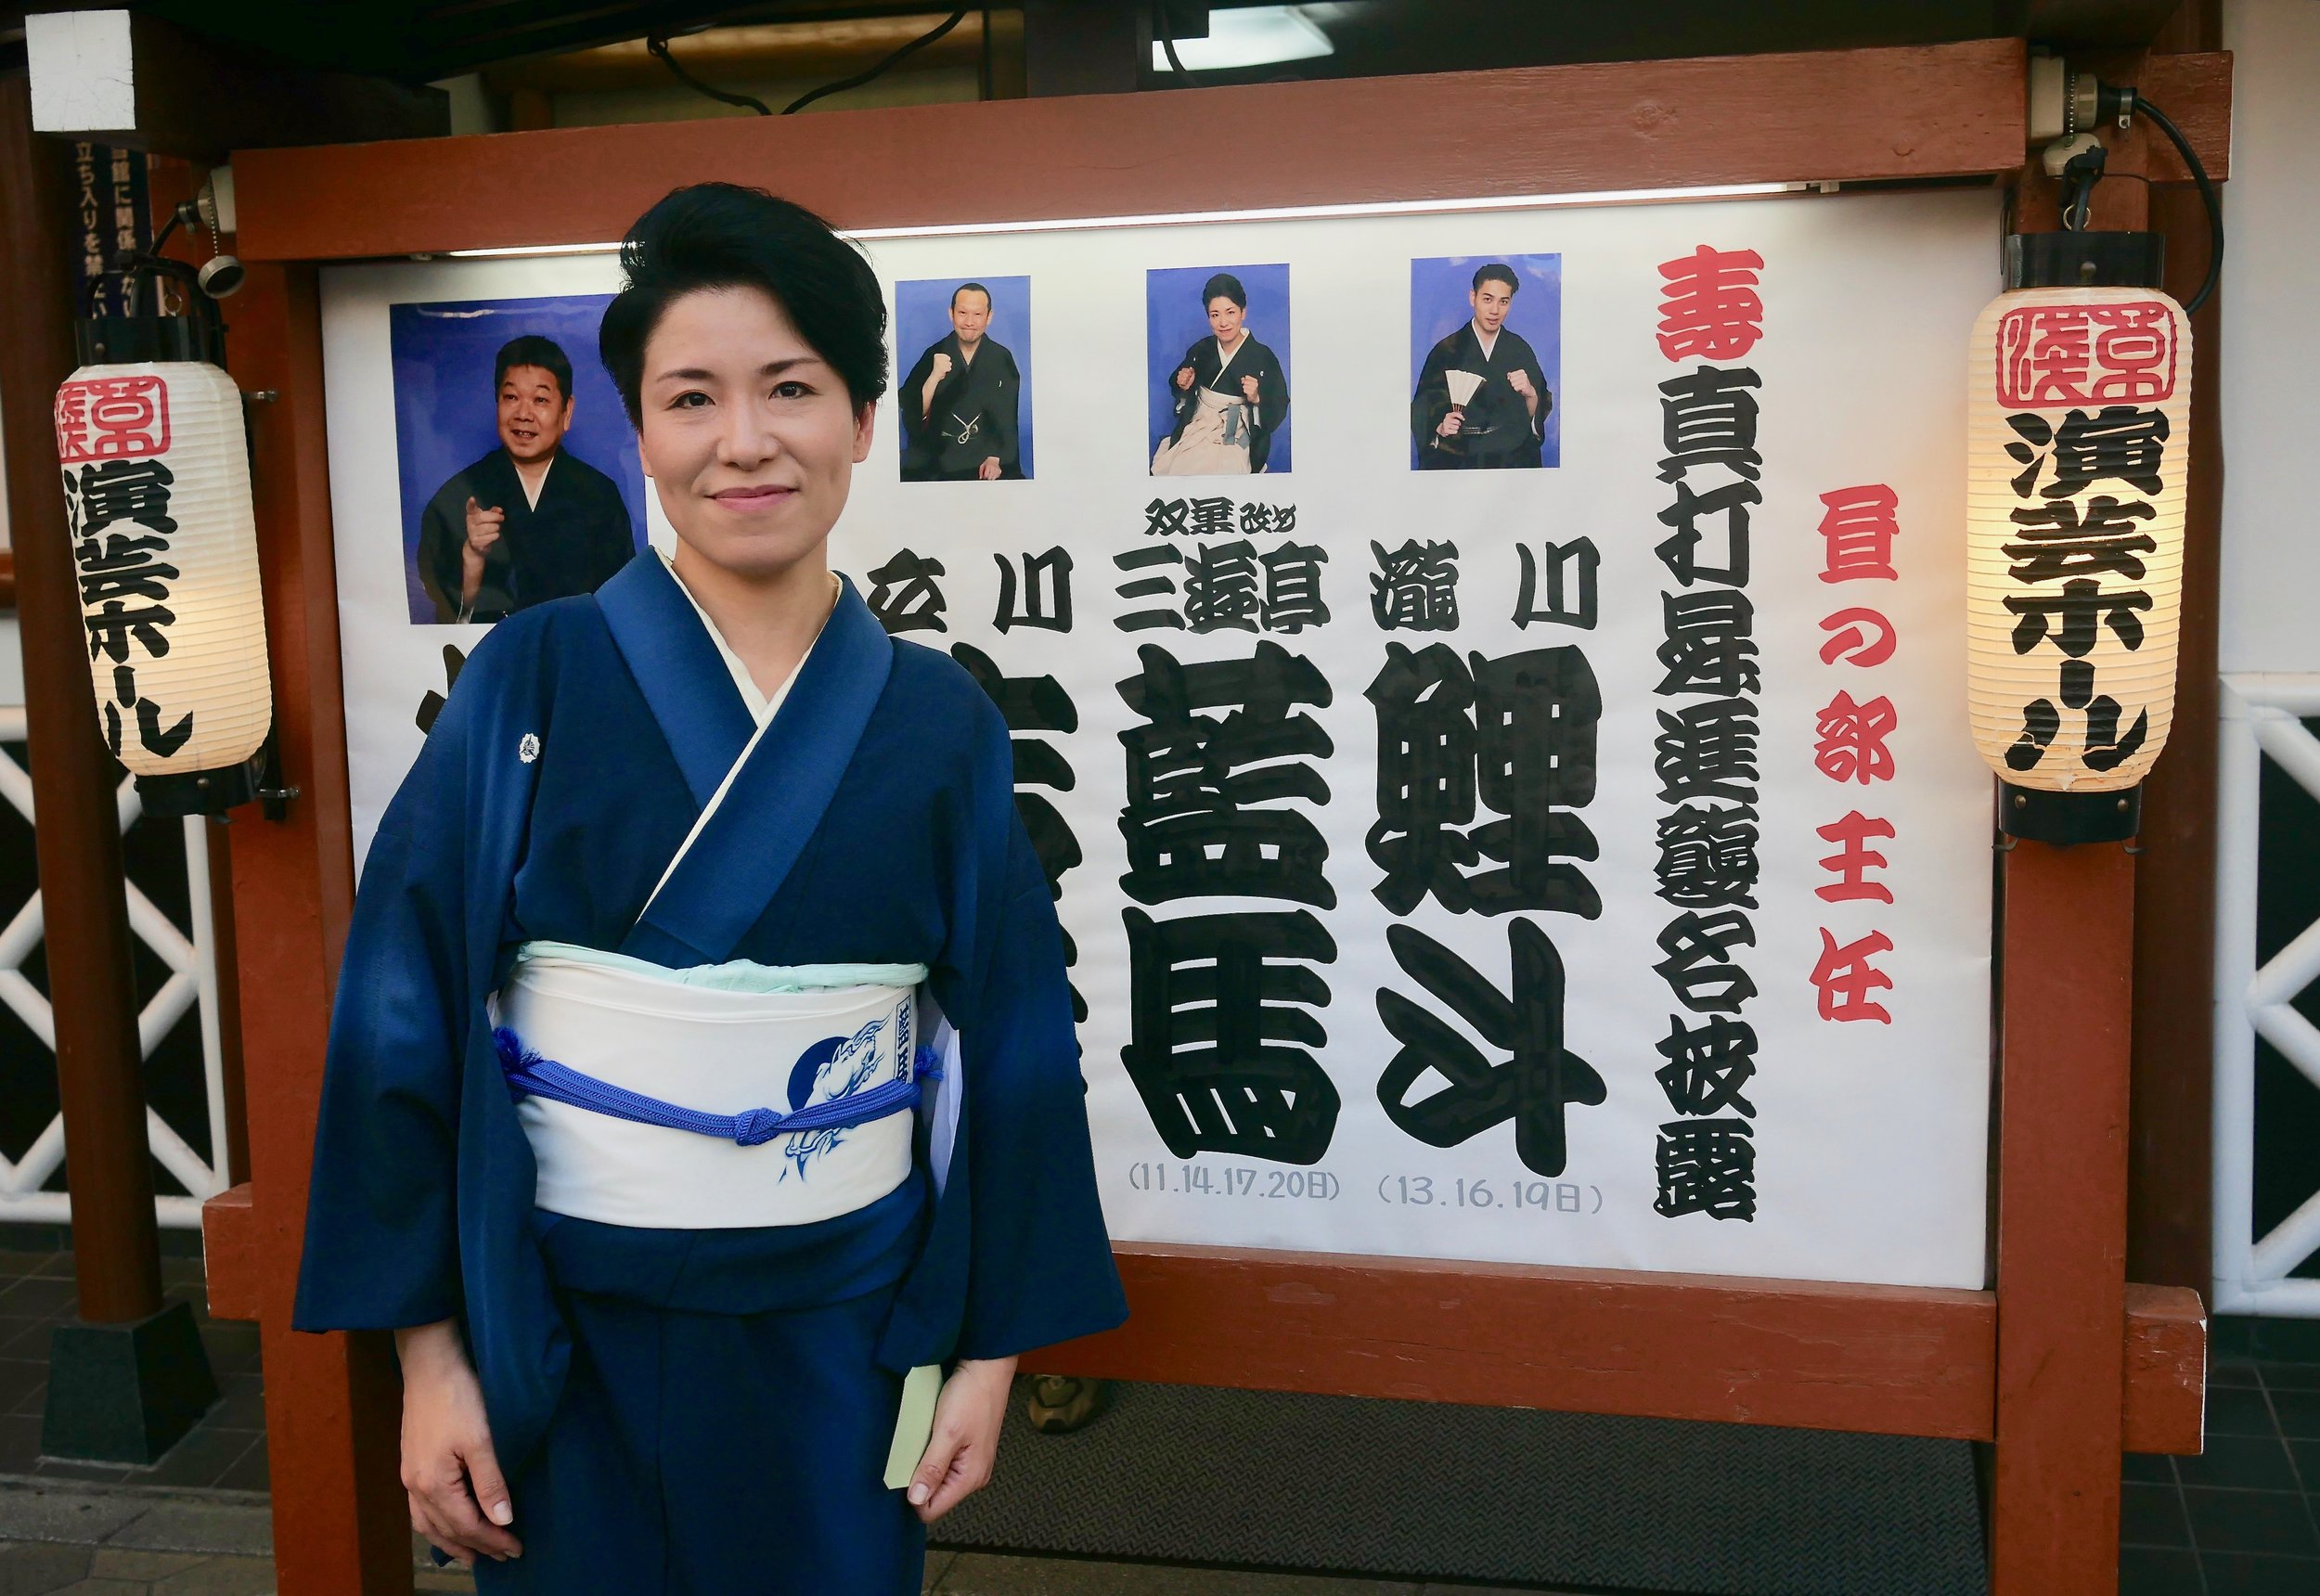 The recently promoted to shin'uchi, Sanyūtei Aiba in front of the Asakusa Engei Hall.